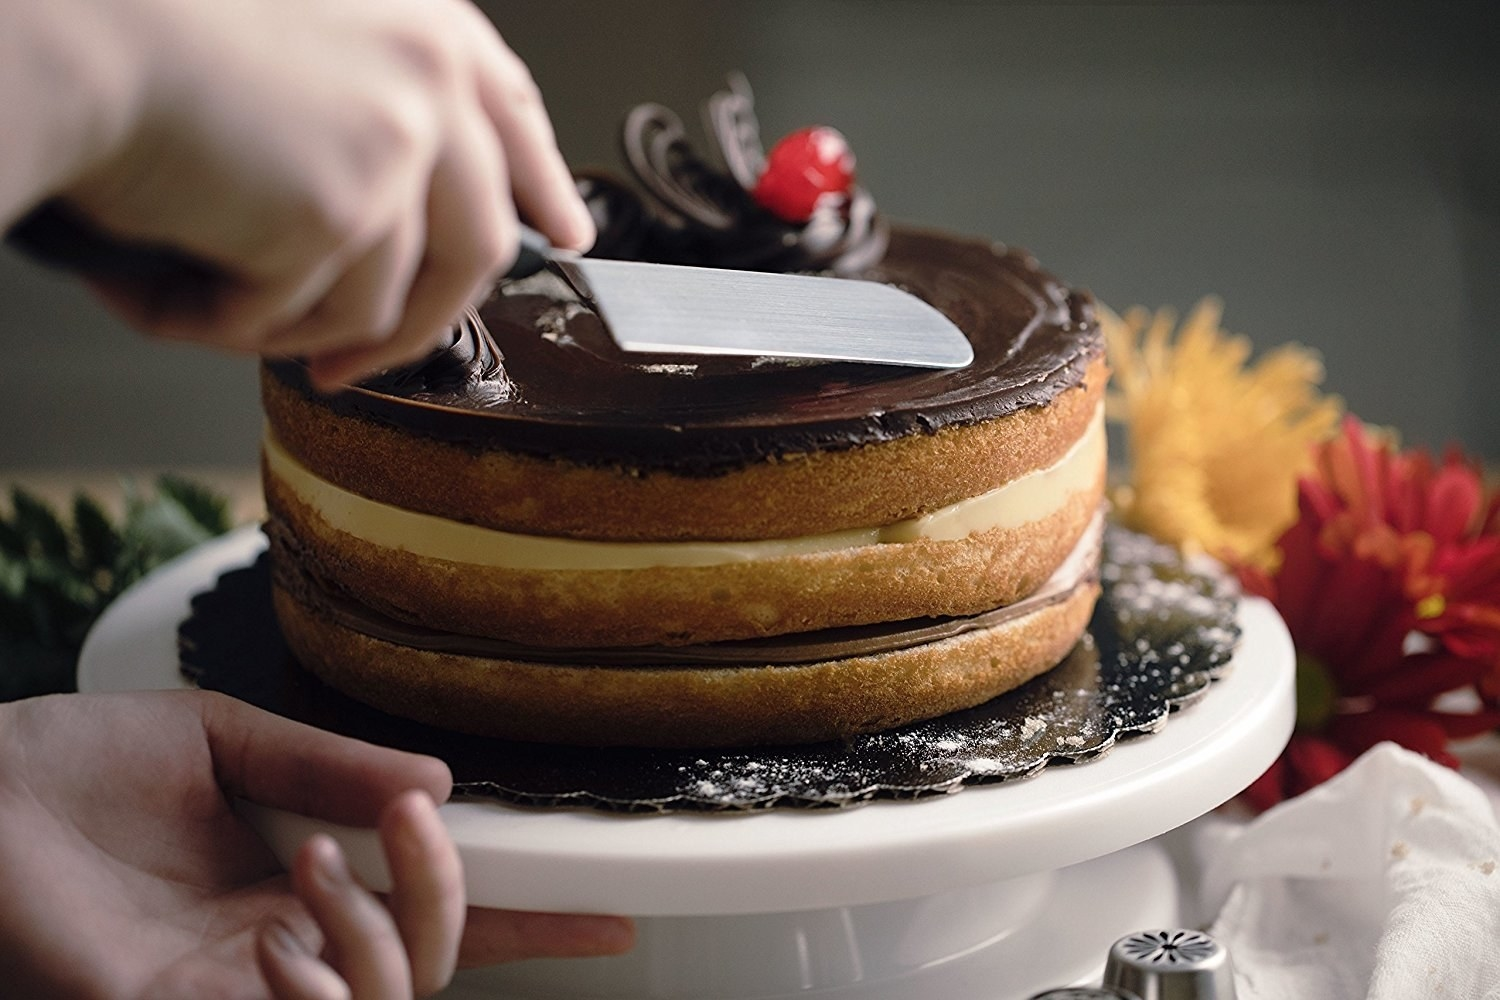 cool cakes to make - HD1500×1000